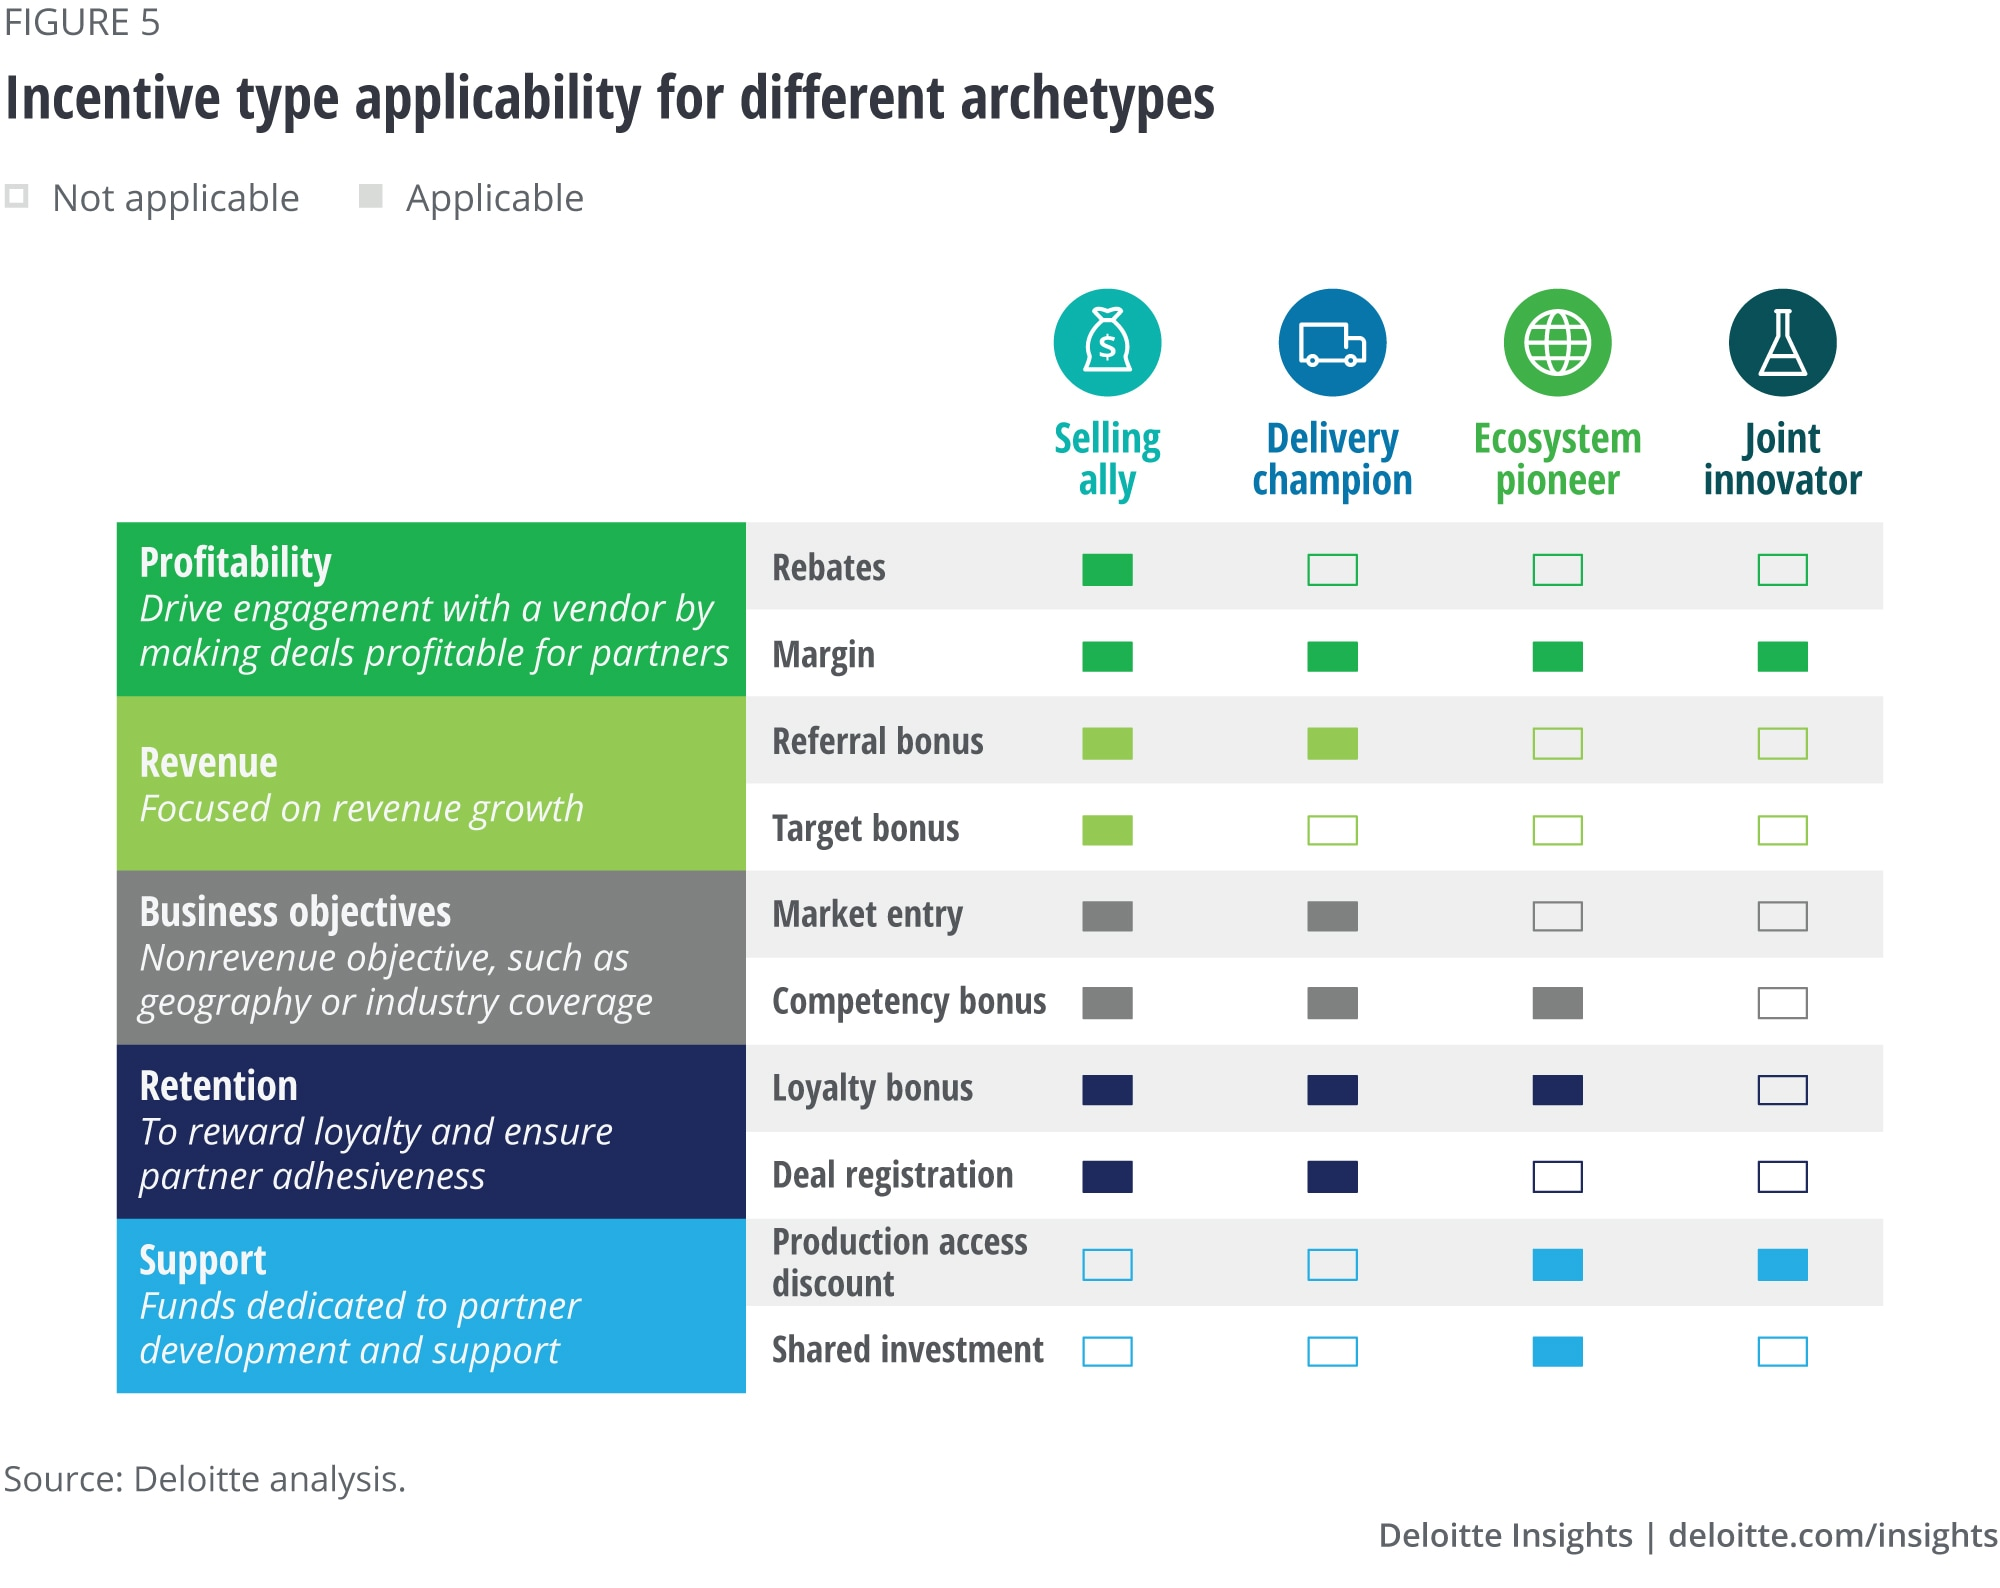 Incentive type applicability for different archetypes